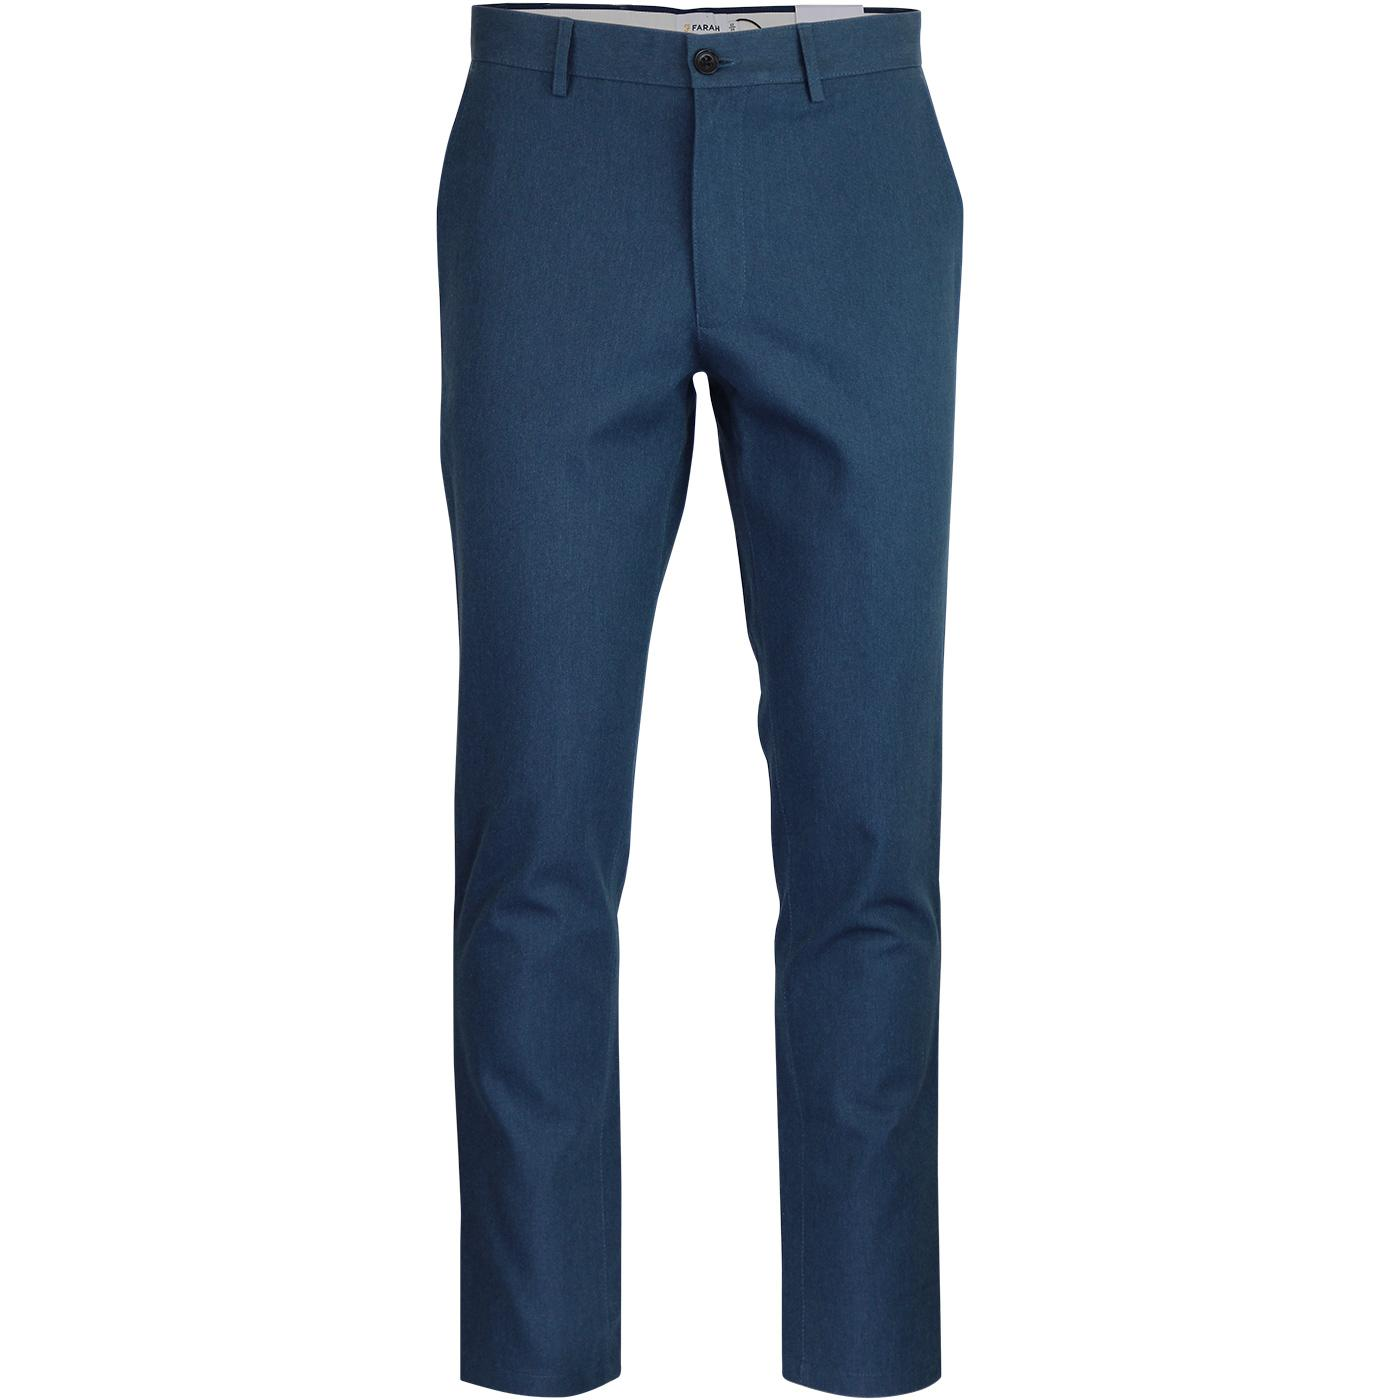 Elm FARAH Retro 60s Mod Hopsack Trousers BLUE STAR